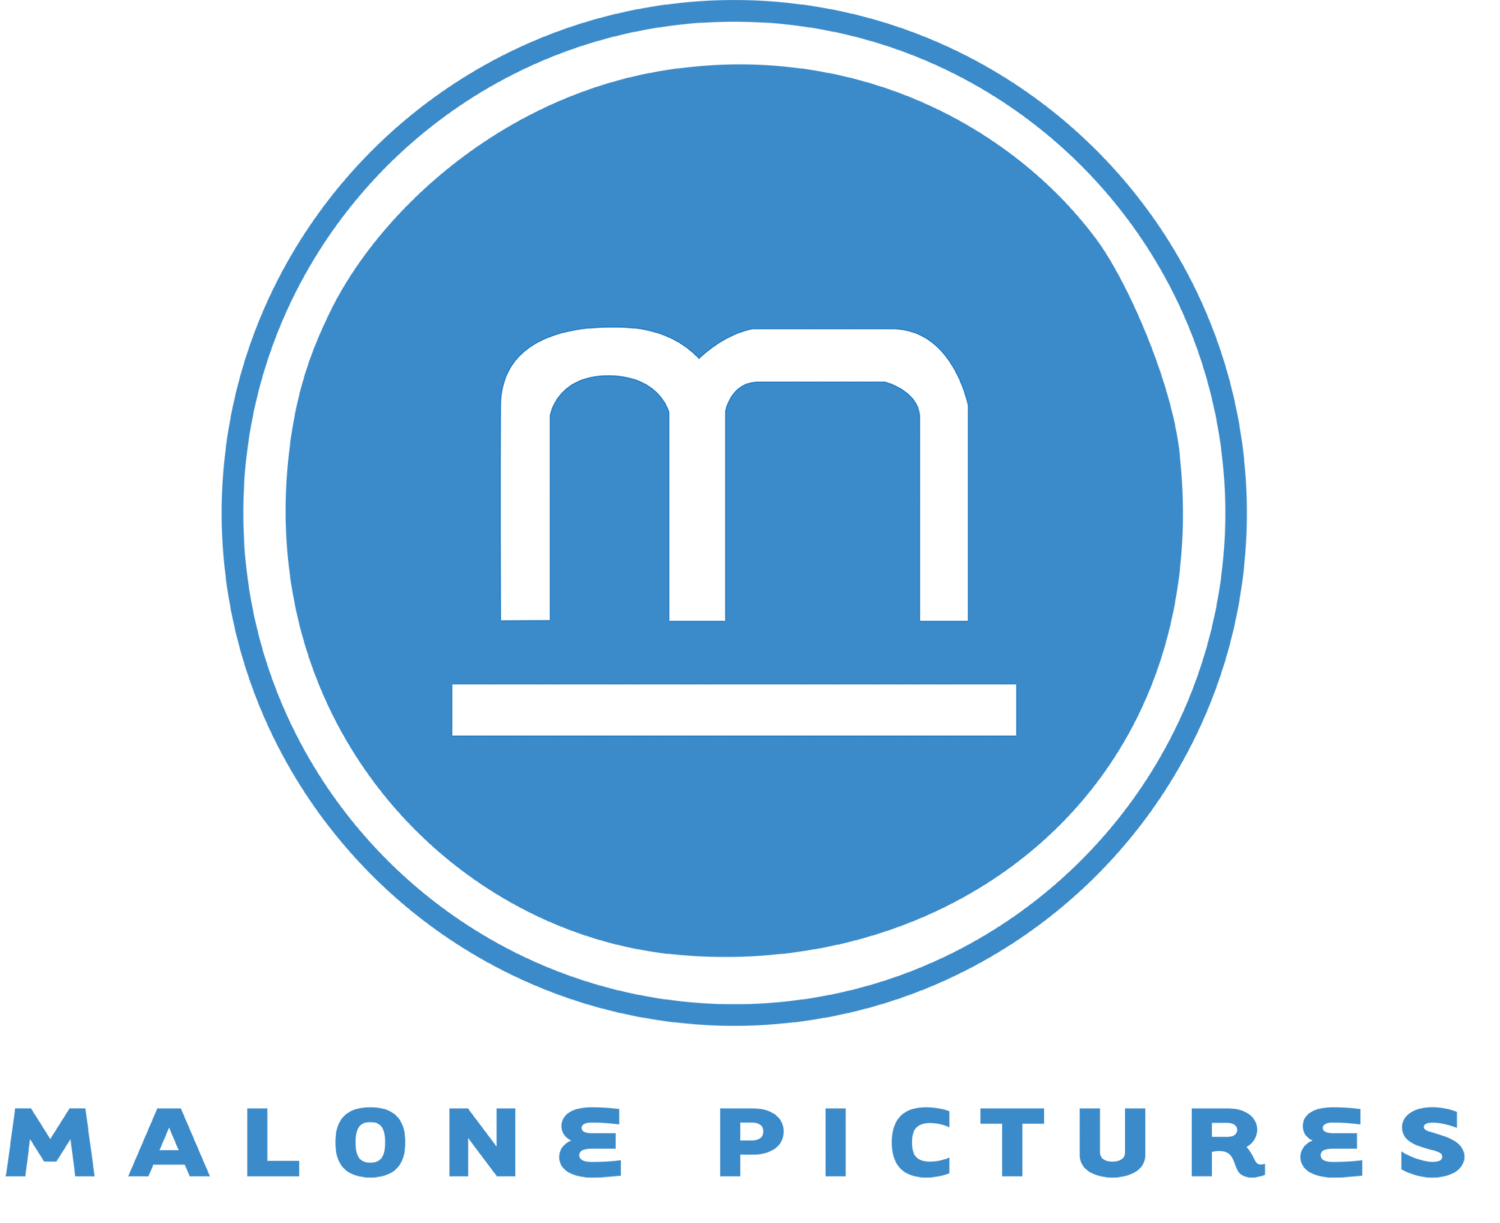 Malone Pictures